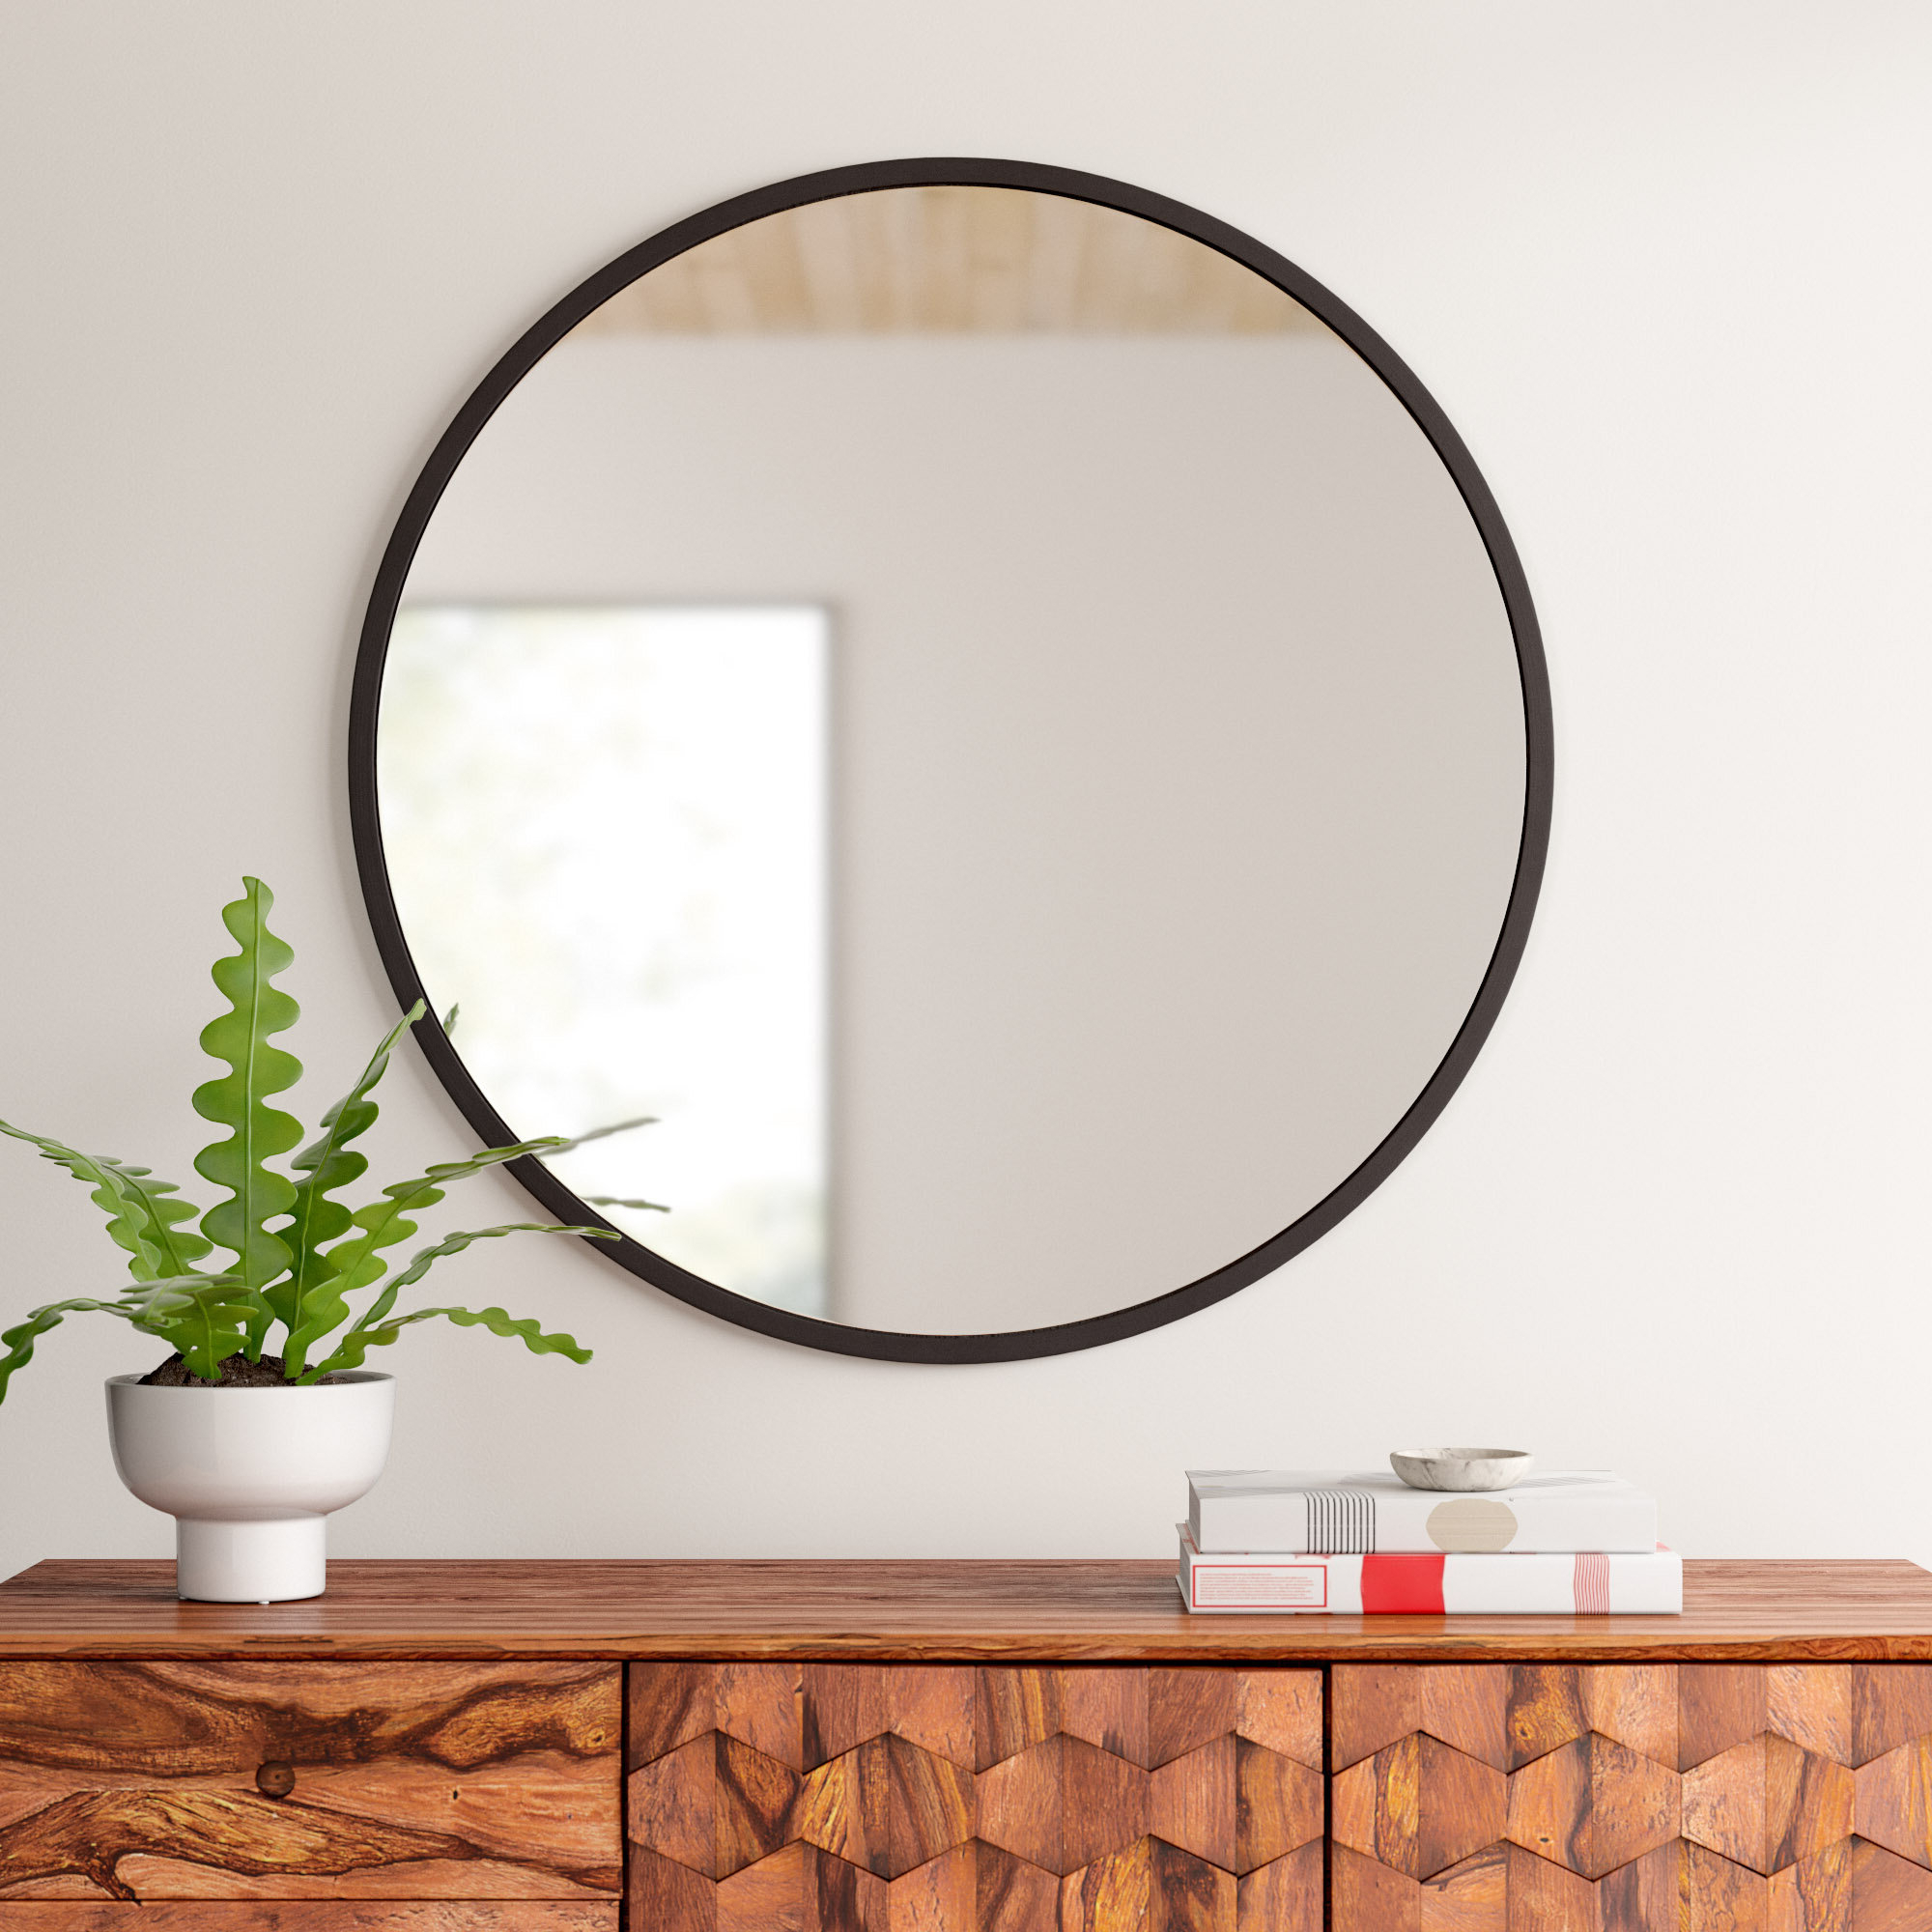 Dekalb Modern & Contemporary Distressed Accent Mirrors Regarding Most Recently Released Umbra Hub Modern And Contemporary Accent Mirror (View 6 of 20)